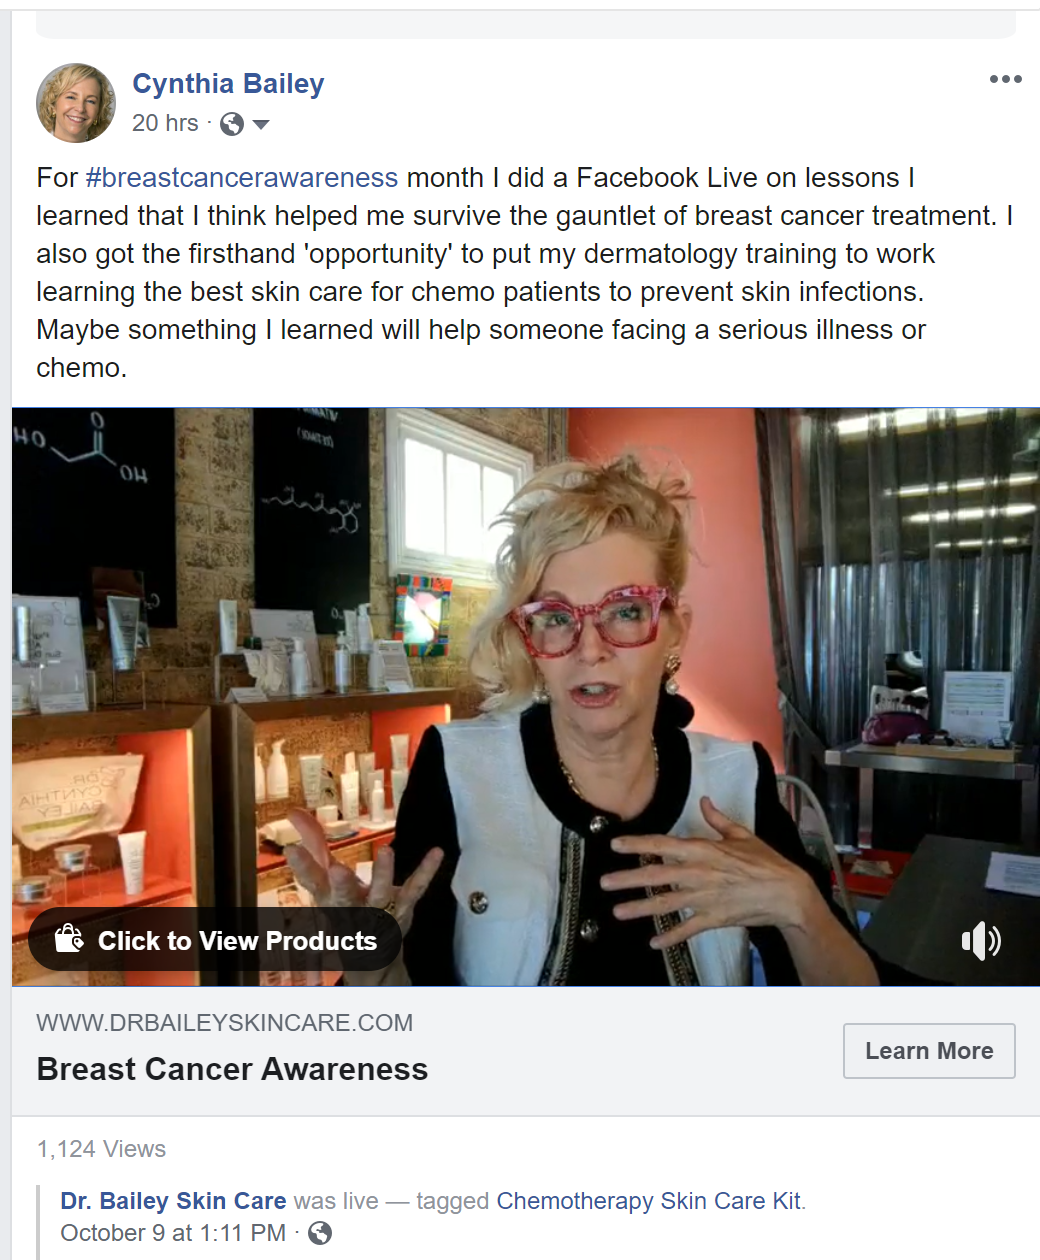 Dermatologist and breast cancer survivor Dr. Bailey's breast cancer story